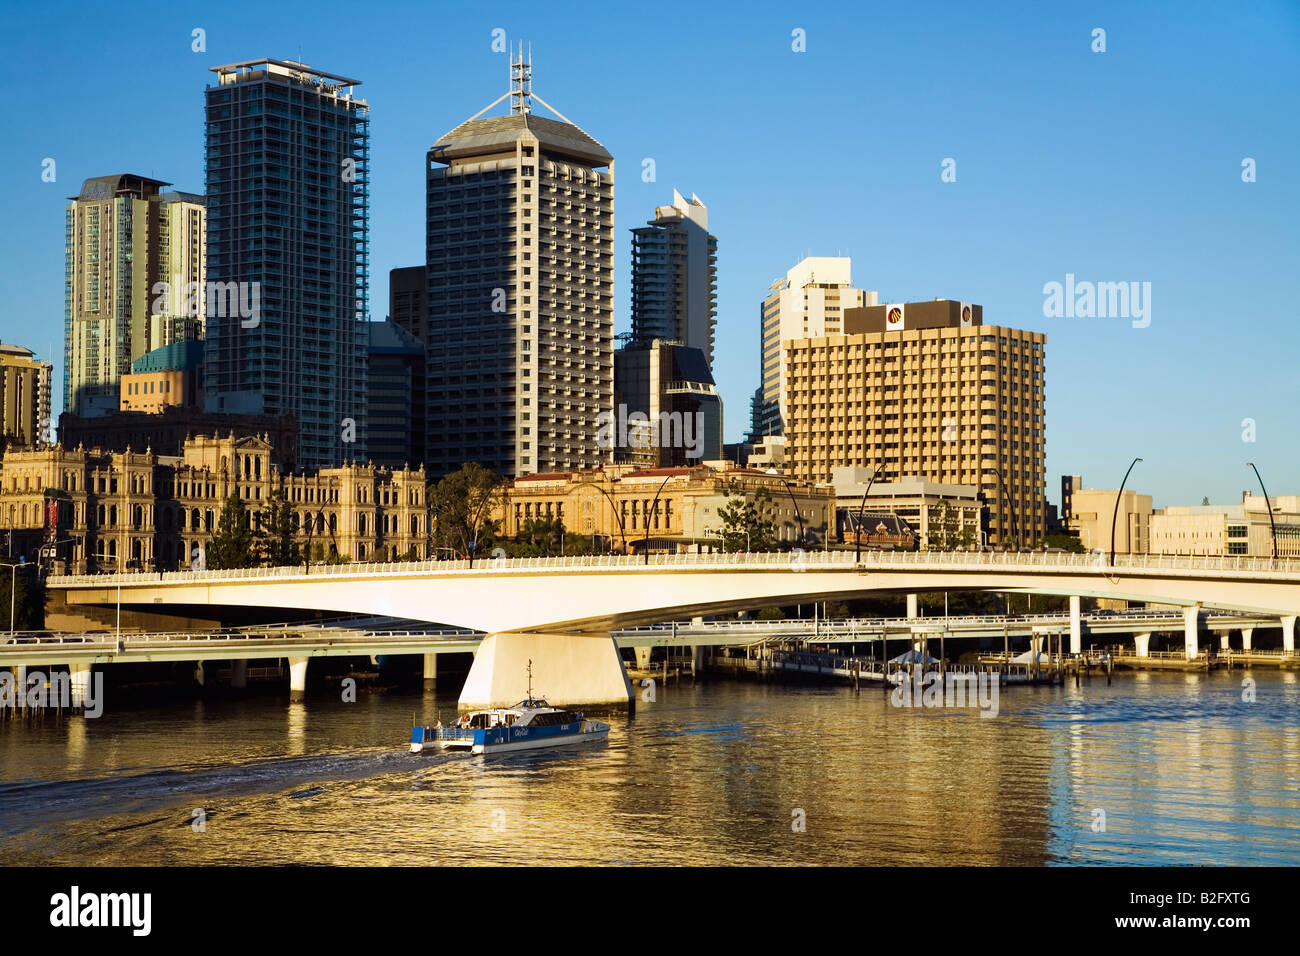 Brisbane city - Brisbane, Queensland, AUSTRALIA - Stock Image